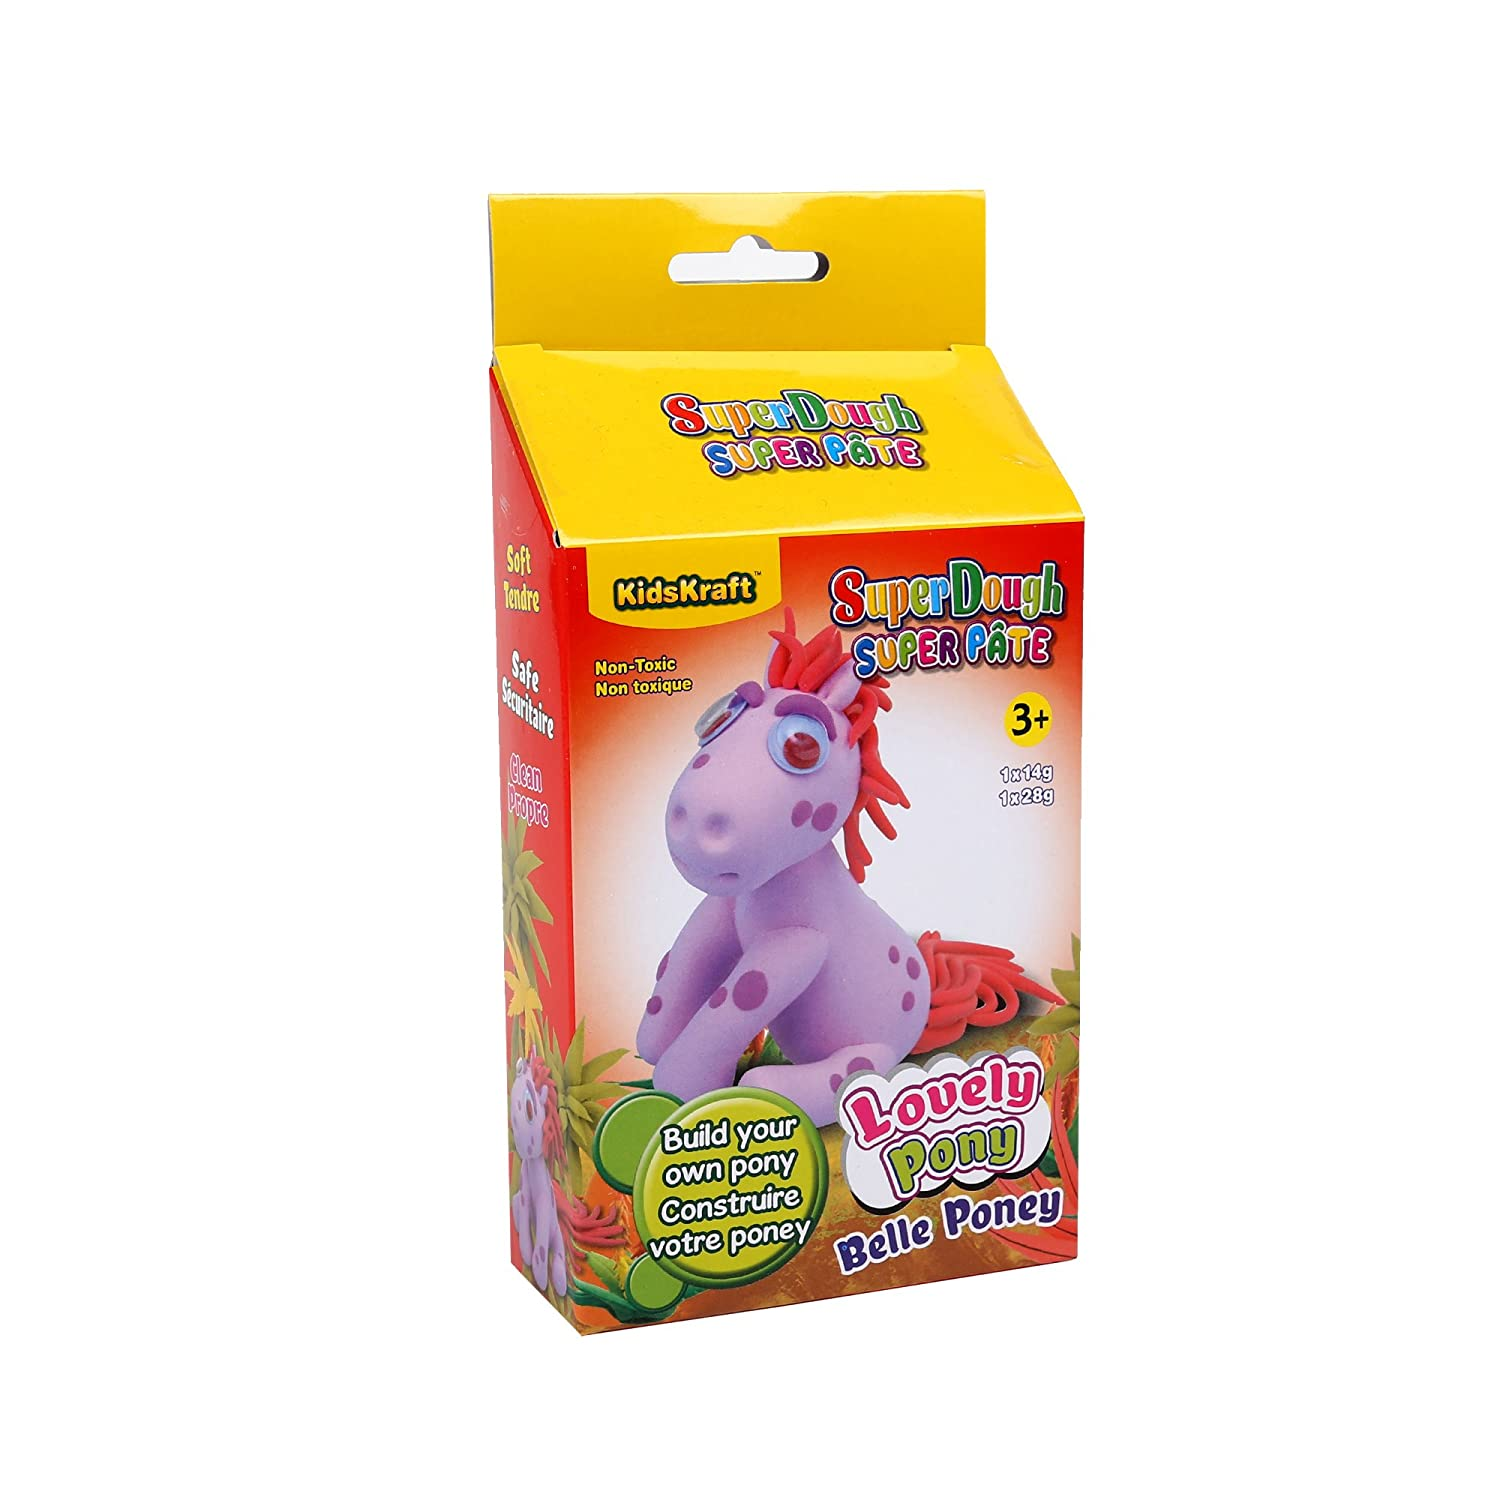 Time 4 Crafts Lovely Pony Super Dough, 4 x 8 x 1.5 inches, Pink CTG Brands 03130DC-PK